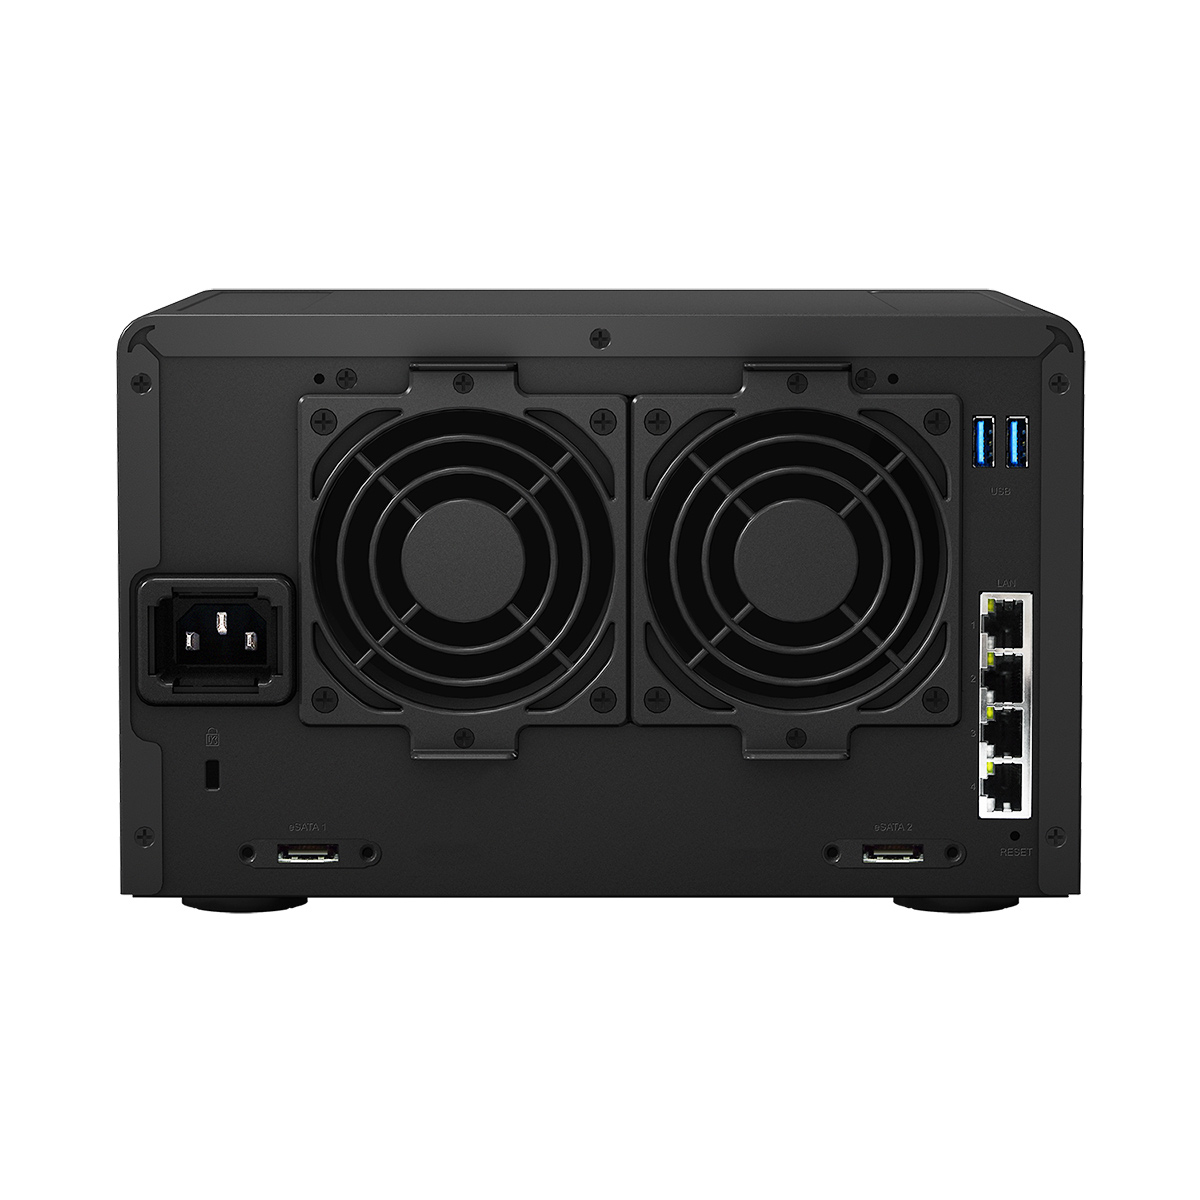 Camera Exterieur Synology Synology Diskstation Ds1515 Serveur Nas Synology Sur